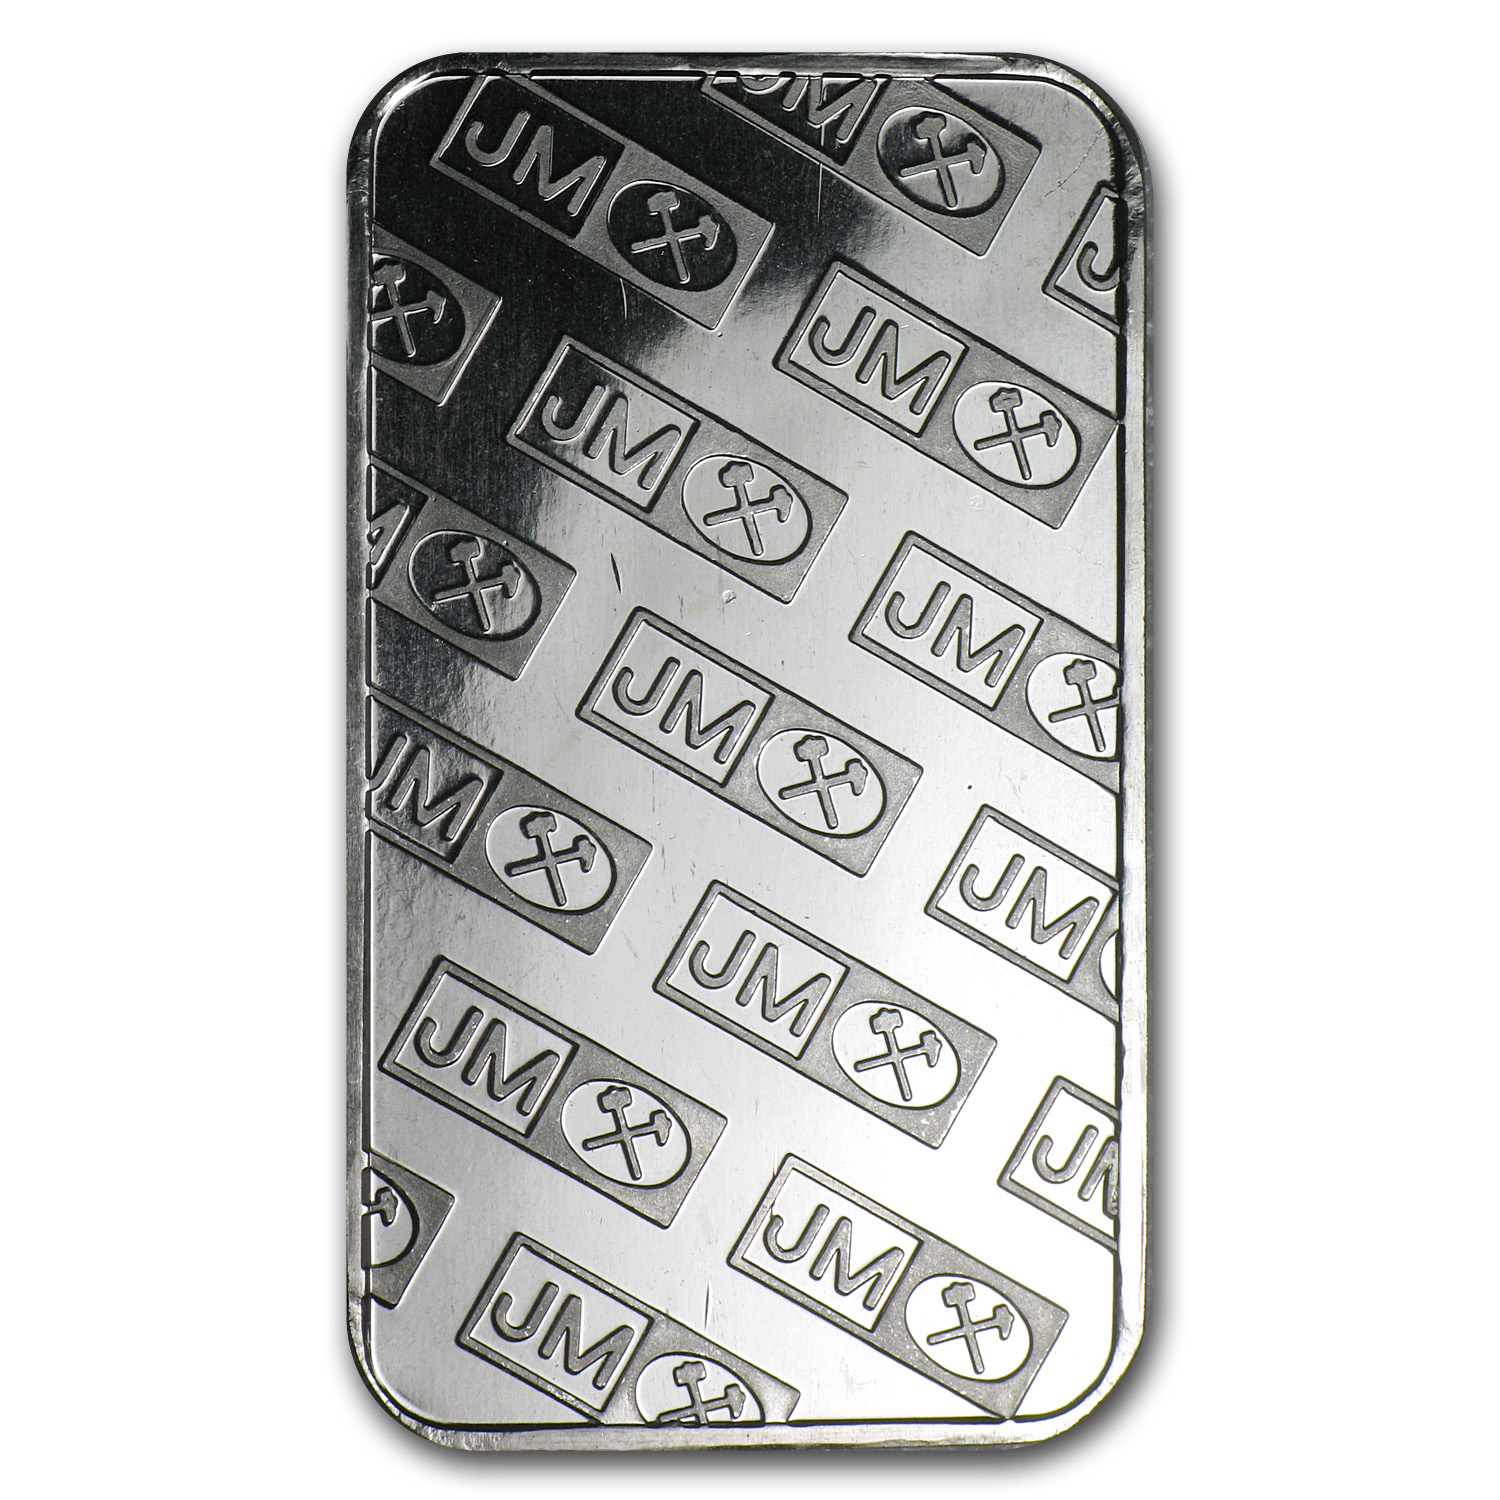 1 oz Palladium Bar - Johnson Matthey